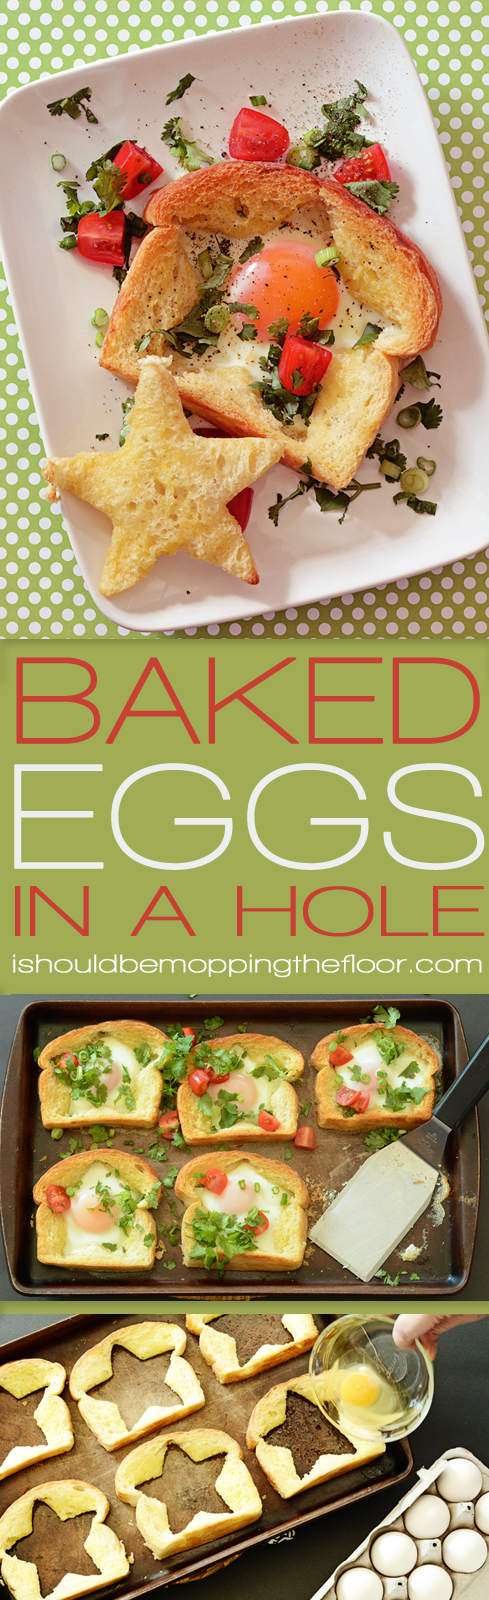 Baked Toads in a Hole {you may call them Baked Eggs in a Hole} | A baked twist on a classic breakfast: easier and less messy to prepare this way.